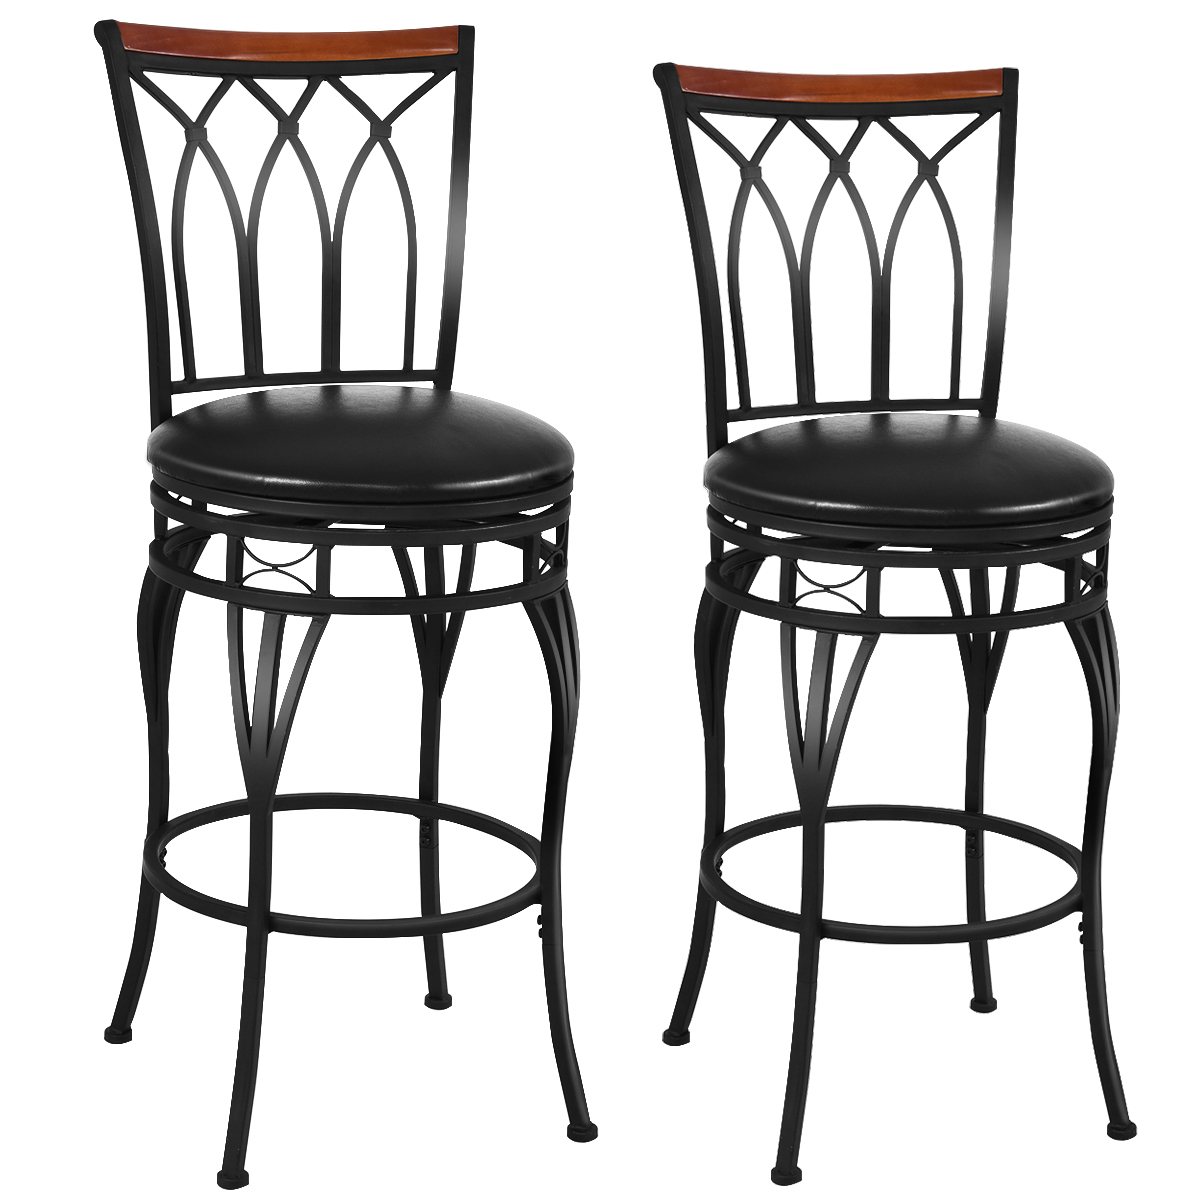 Costway Set Of 2 Vintage Bar Stool 24'' 28.5'' Height Adjustable Bistro Pub Chair